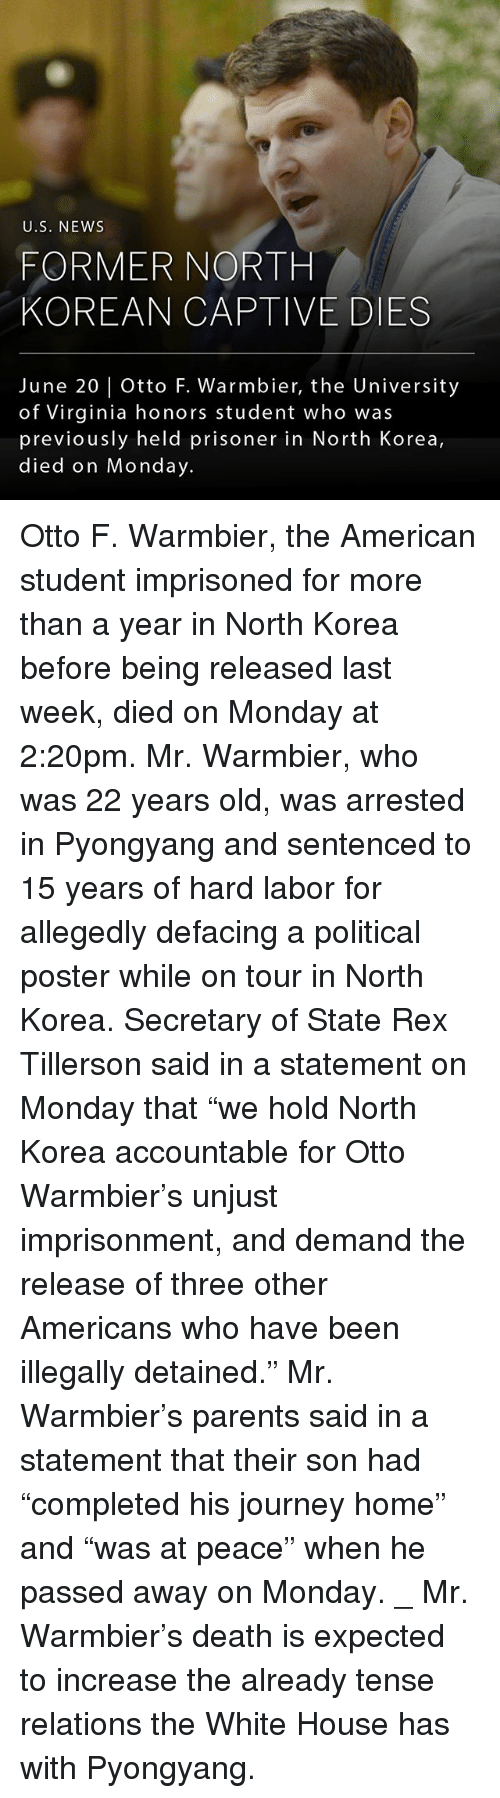 """Journey, Memes, and News: U.S. NEWS  FORMER NORTH  KOREAN CAPTIVE DIES  June 20 Otto F. Warmbier, the University  of Virginia honors student who was  previously held prisoner in North Korea,  died on Monday. Otto F. Warmbier, the American student imprisoned for more than a year in North Korea before being released last week, died on Monday at 2:20pm. Mr. Warmbier, who was 22 years old, was arrested in Pyongyang and sentenced to 15 years of hard labor for allegedly defacing a political poster while on tour in North Korea. Secretary of State Rex Tillerson said in a statement on Monday that """"we hold North Korea accountable for Otto Warmbier's unjust imprisonment, and demand the release of three other Americans who have been illegally detained."""" Mr. Warmbier's parents said in a statement that their son had """"completed his journey home"""" and """"was at peace"""" when he passed away on Monday. _ Mr. Warmbier's death is expected to increase the already tense relations the White House has with Pyongyang."""